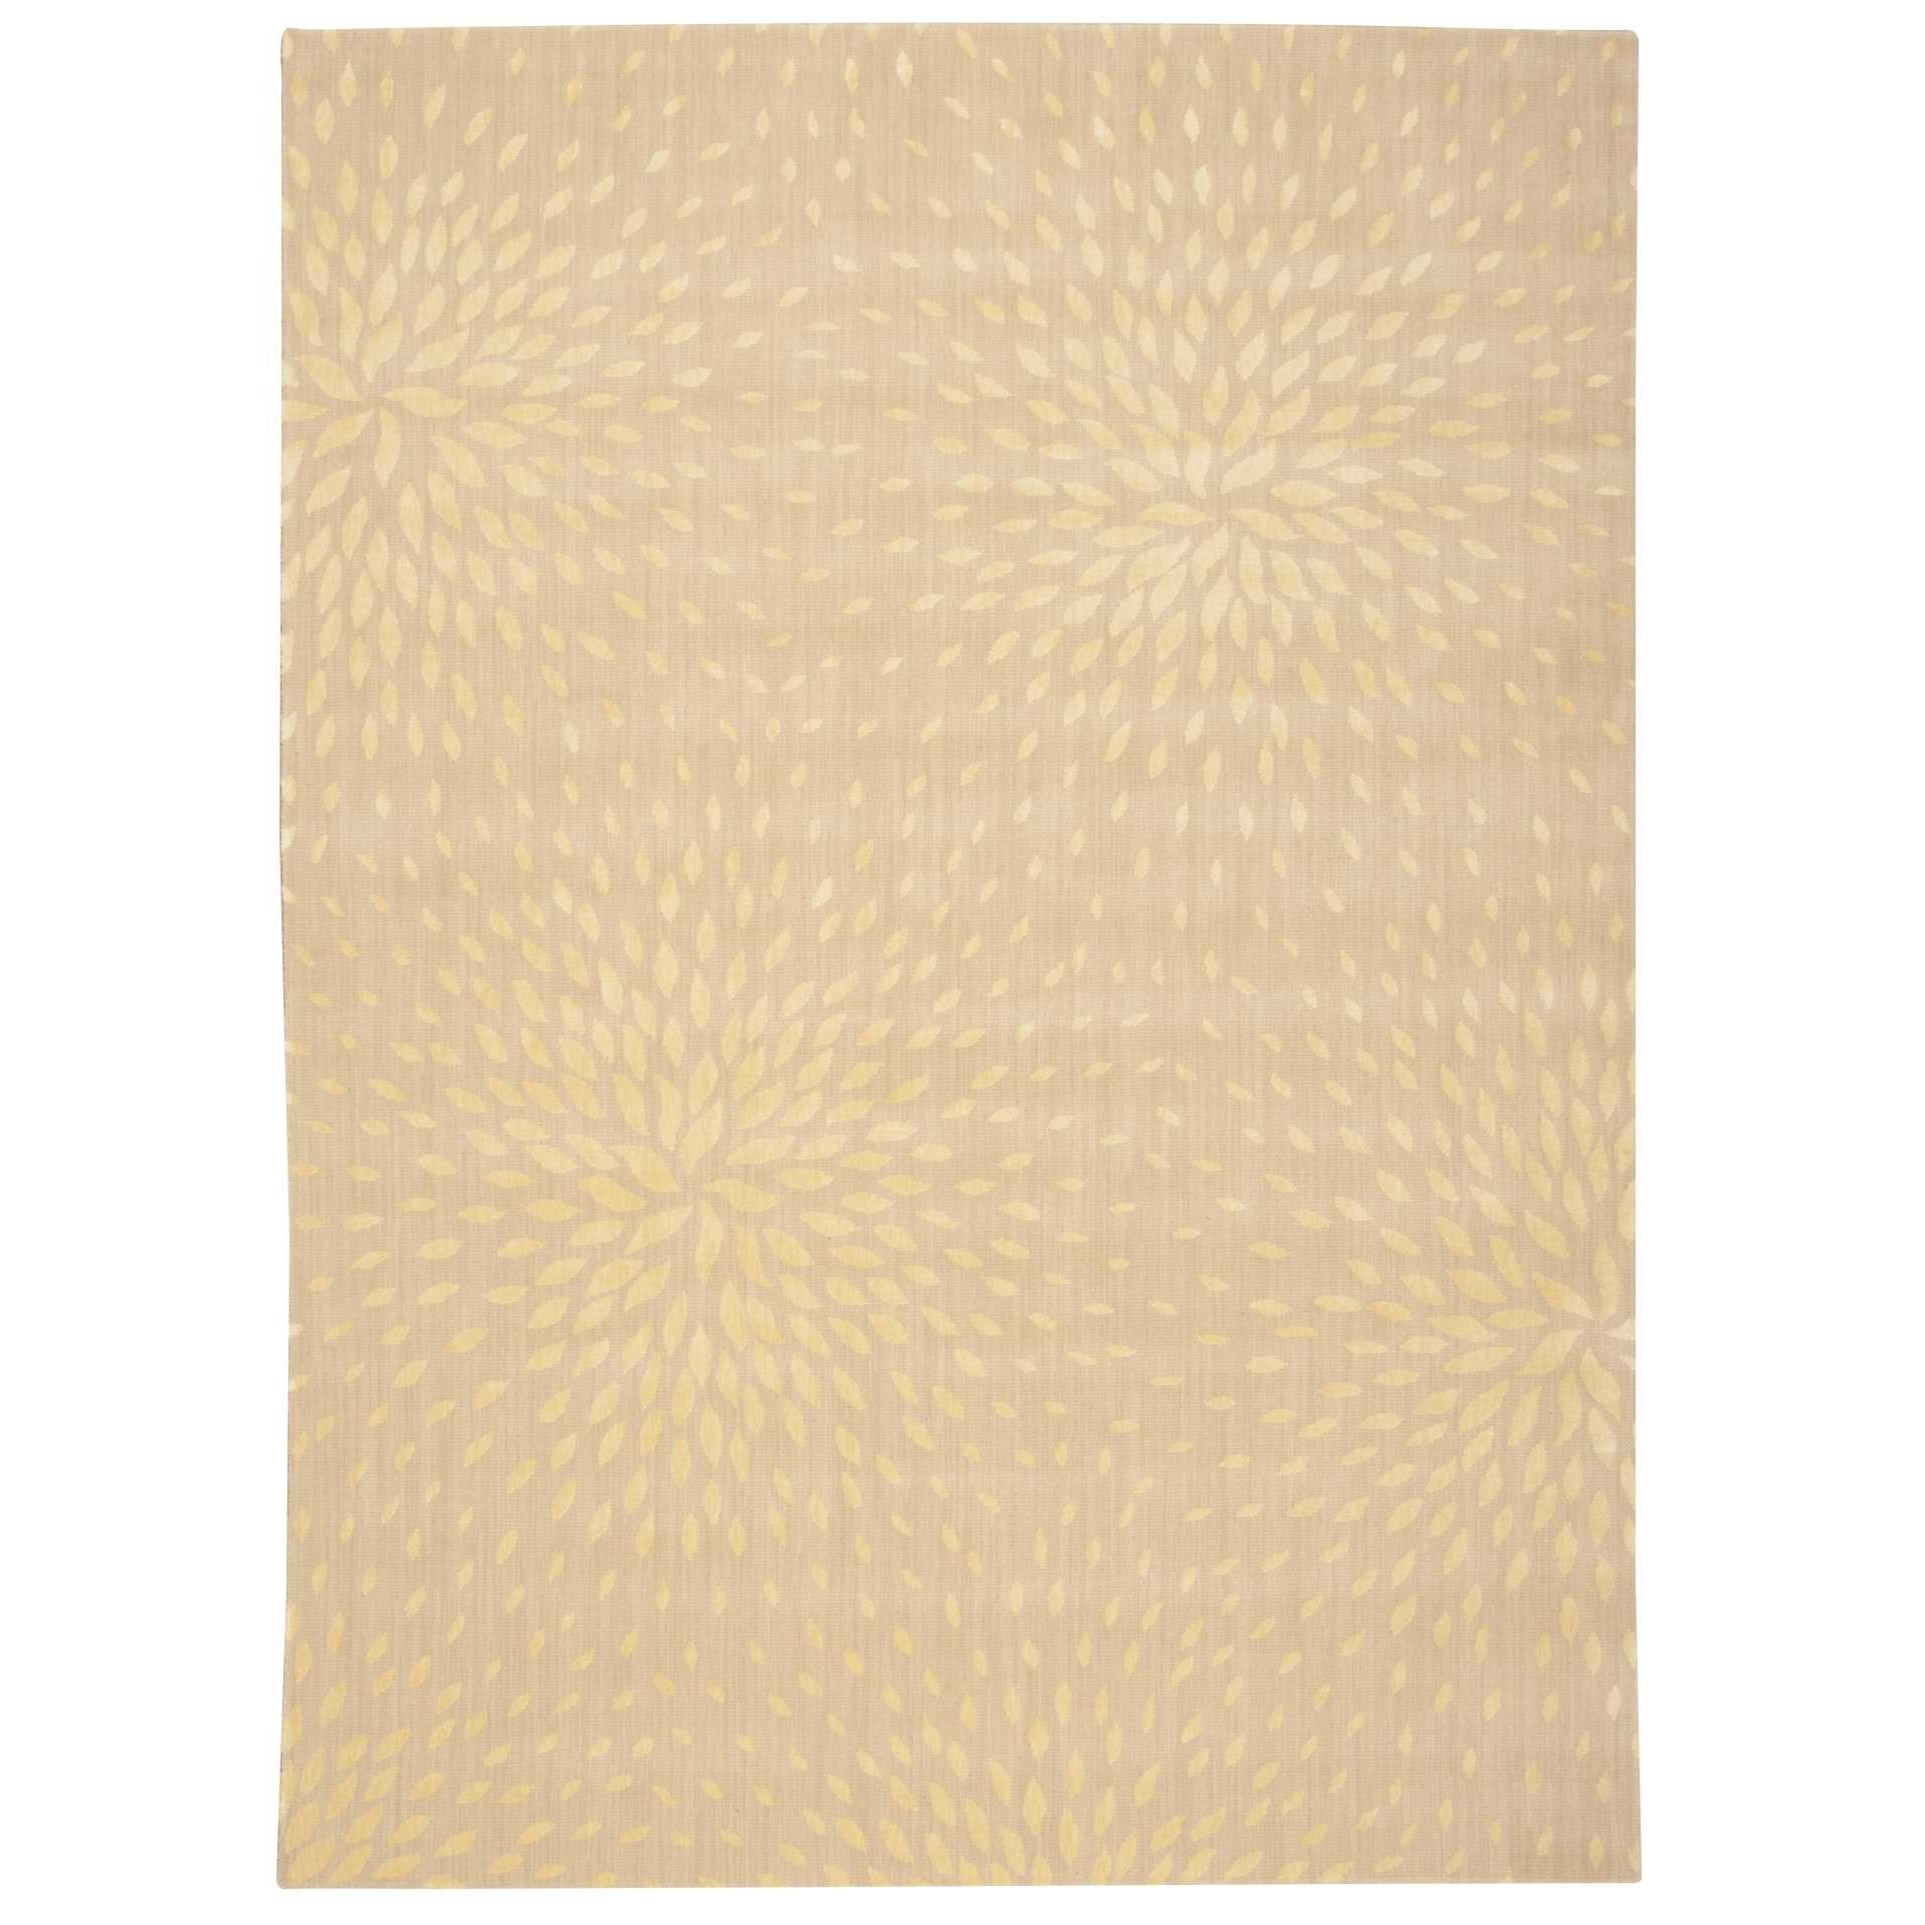 """Capri 7'9"""" x 10'10"""" Beige Rectangle Rug by Nourison at Home Collections Furniture"""